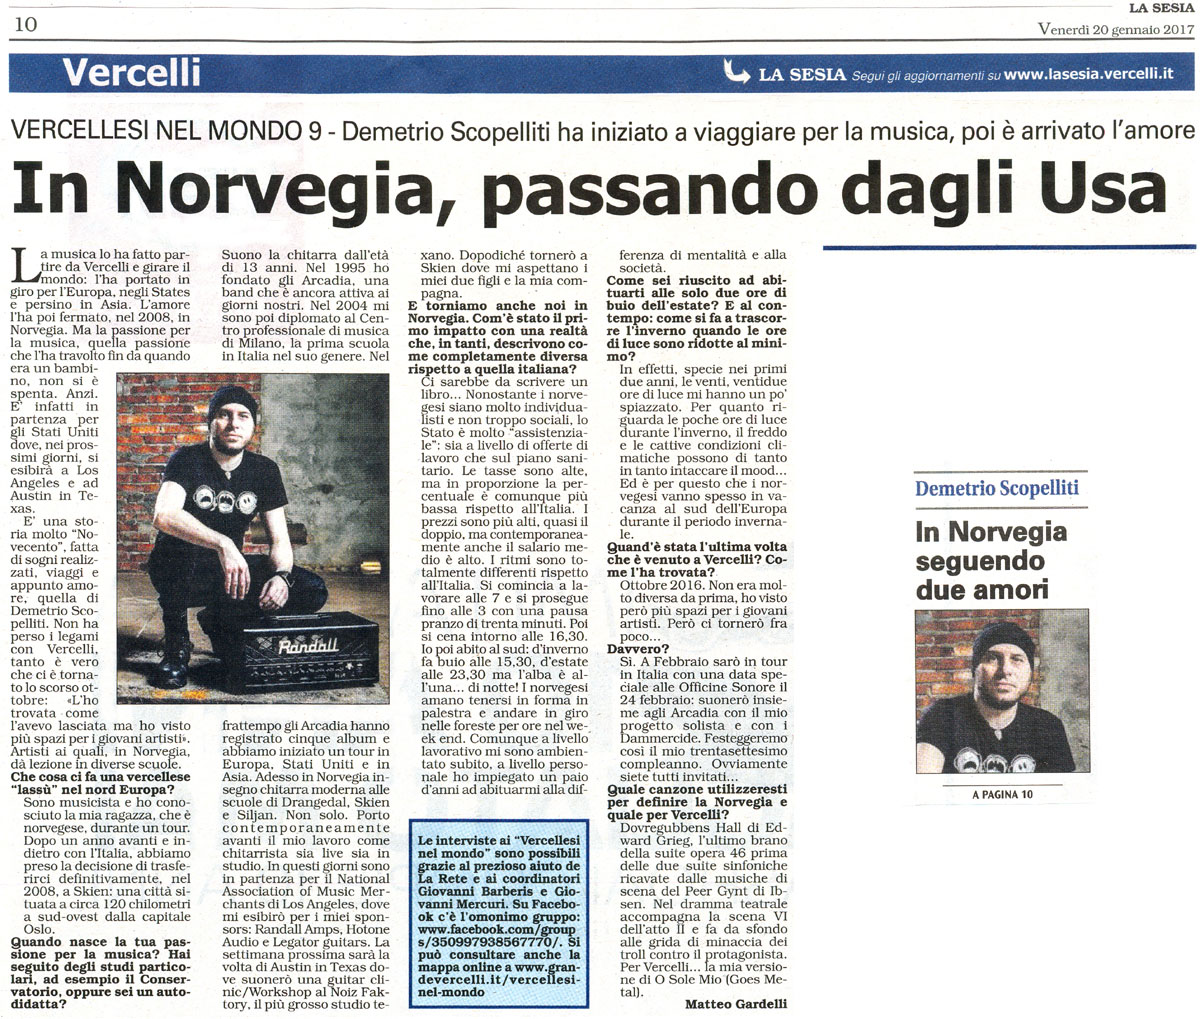 Interview in Italian with Demetrio «Dimitry» Scope<br>lliti - La Sesia (Italian Newspaper) Jan 20, 2017